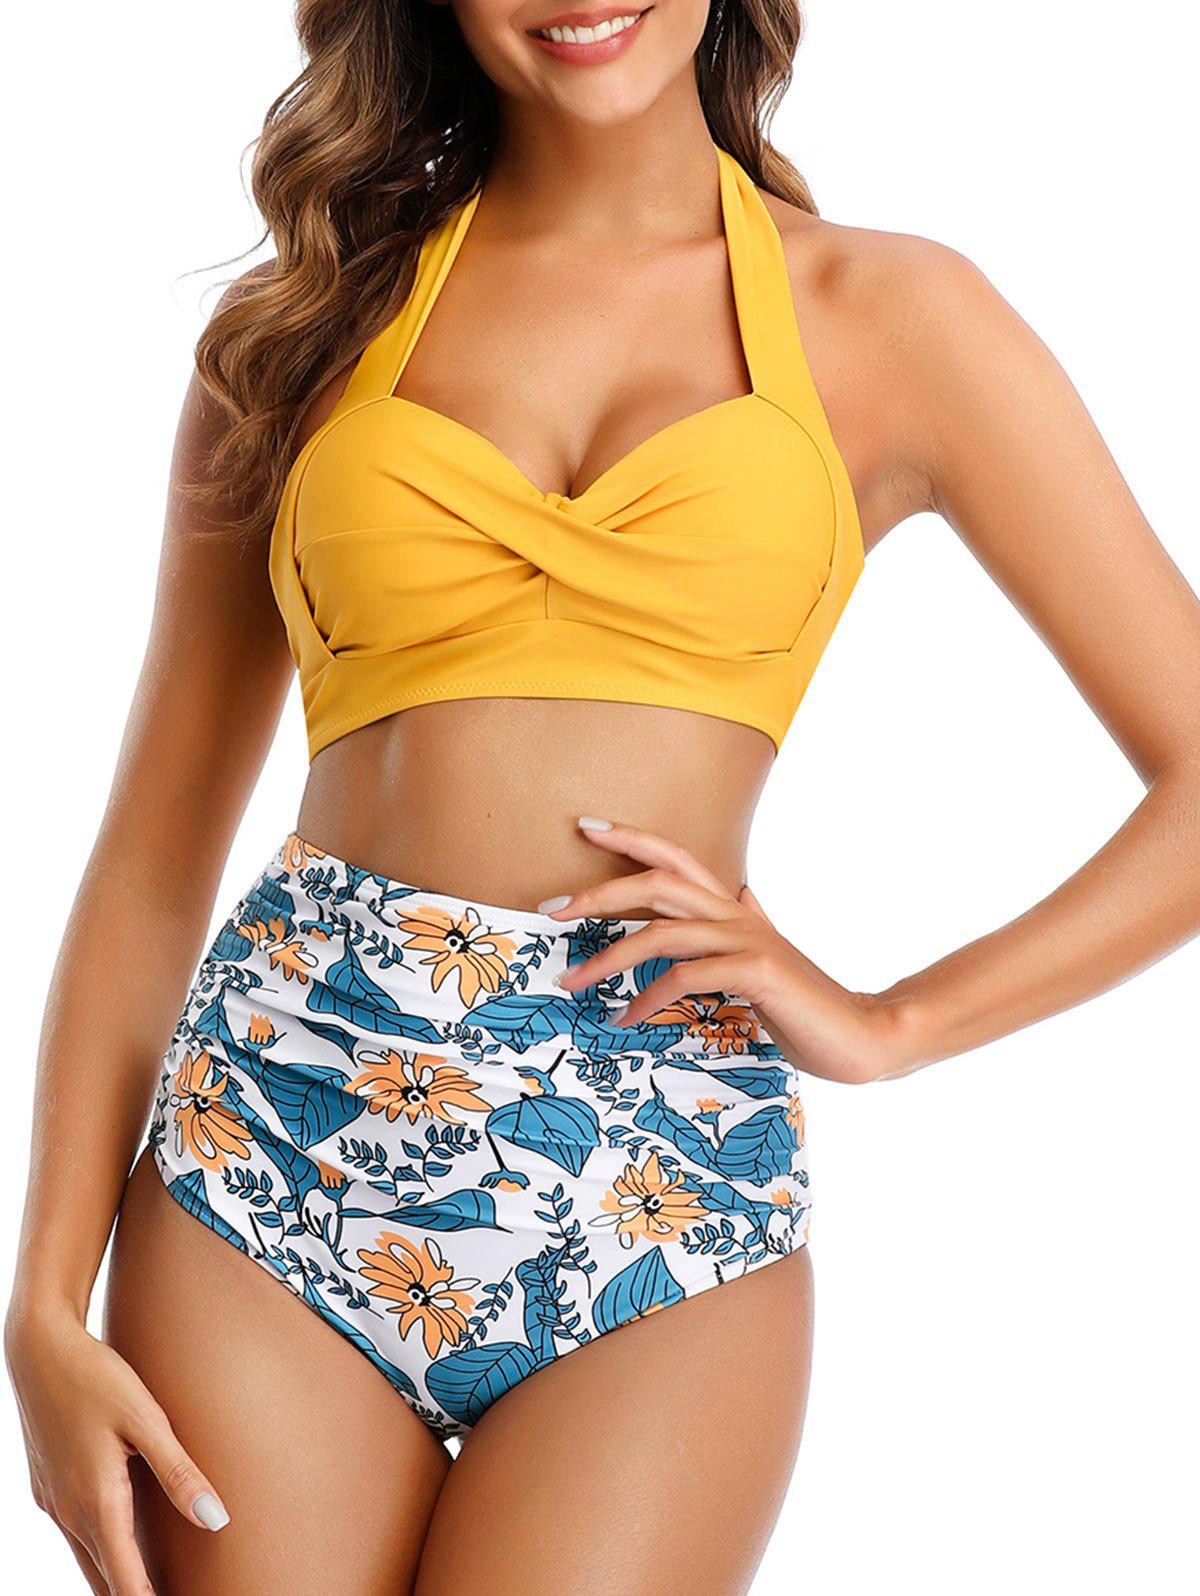 Floral Leaves Twist Knotted Bikini Swimsuit - GOLDENROD S